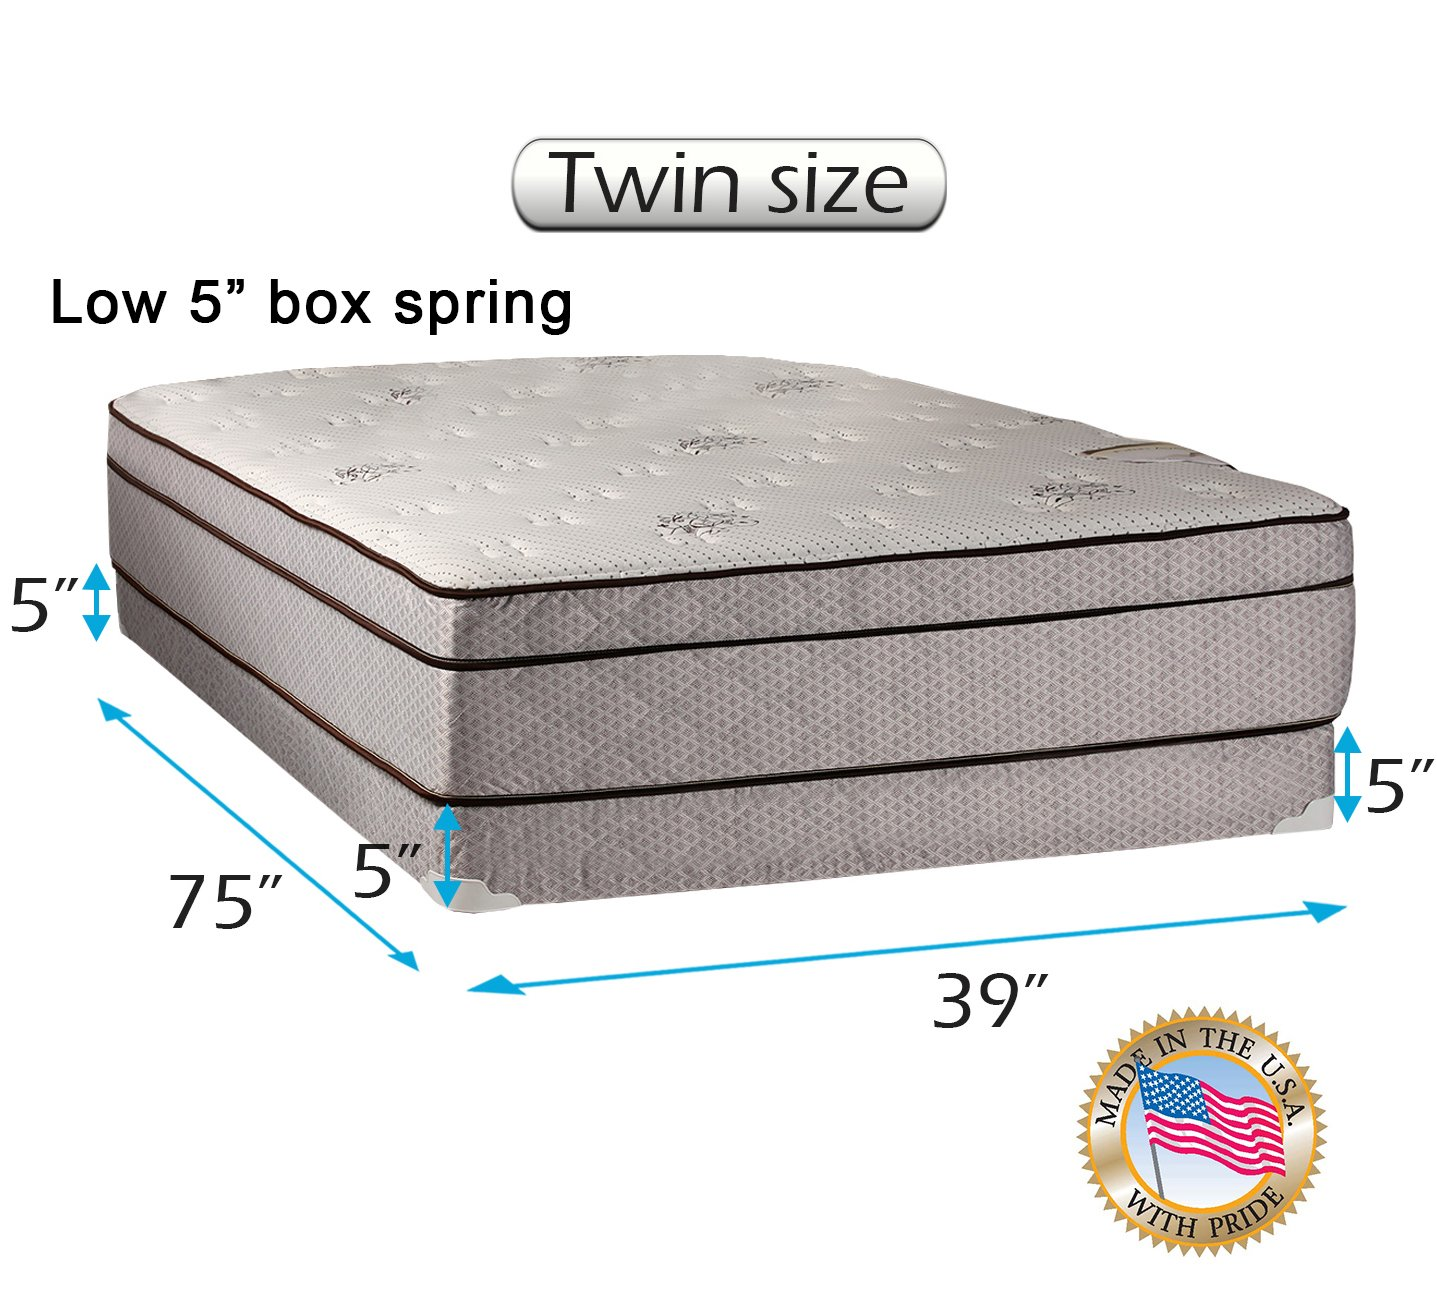 Dream Solutions Fifth Ave Extra Soft Foam Eurotop (PillowTop) Twin Mattress & Low 5'' Height Box Spring Set with Mattress Cover Protector Included - Fully Assembled, Orthopedic, Quality Sleep System by Dream Solutions USA